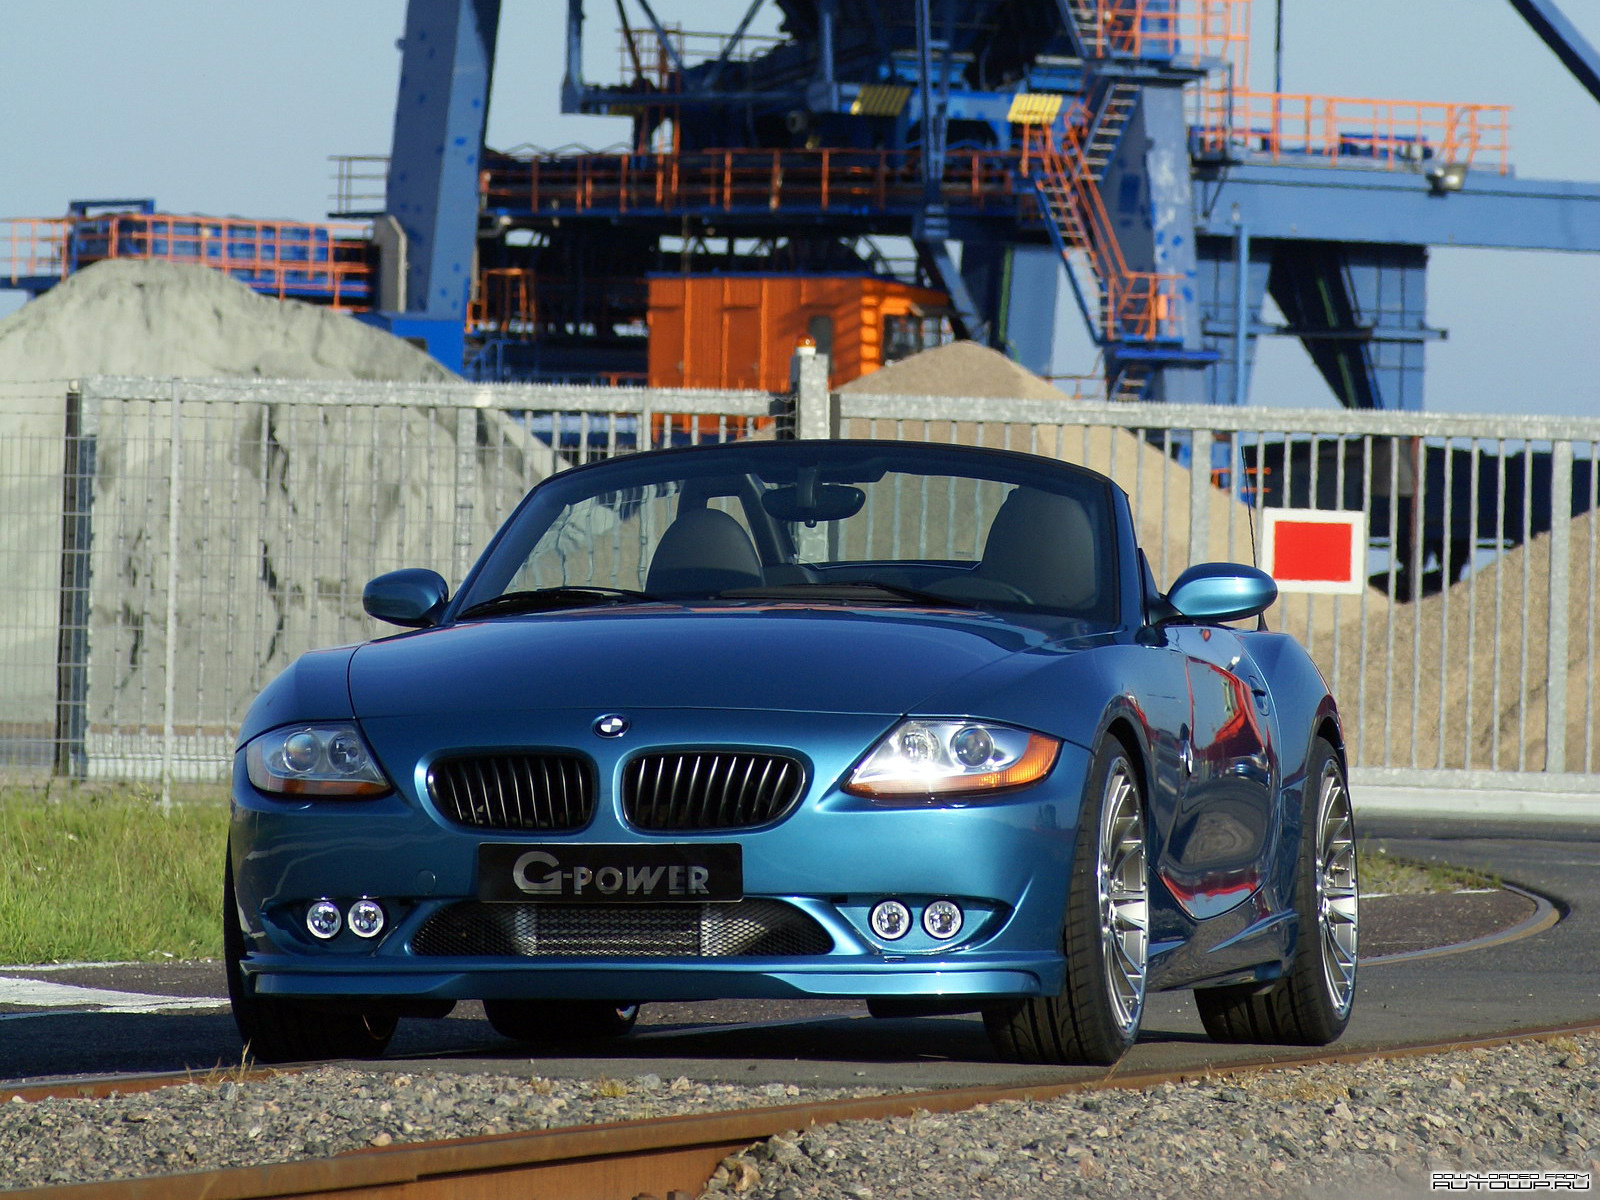 G Power BMW G4 3.0i Evo III (E85) photo 63304